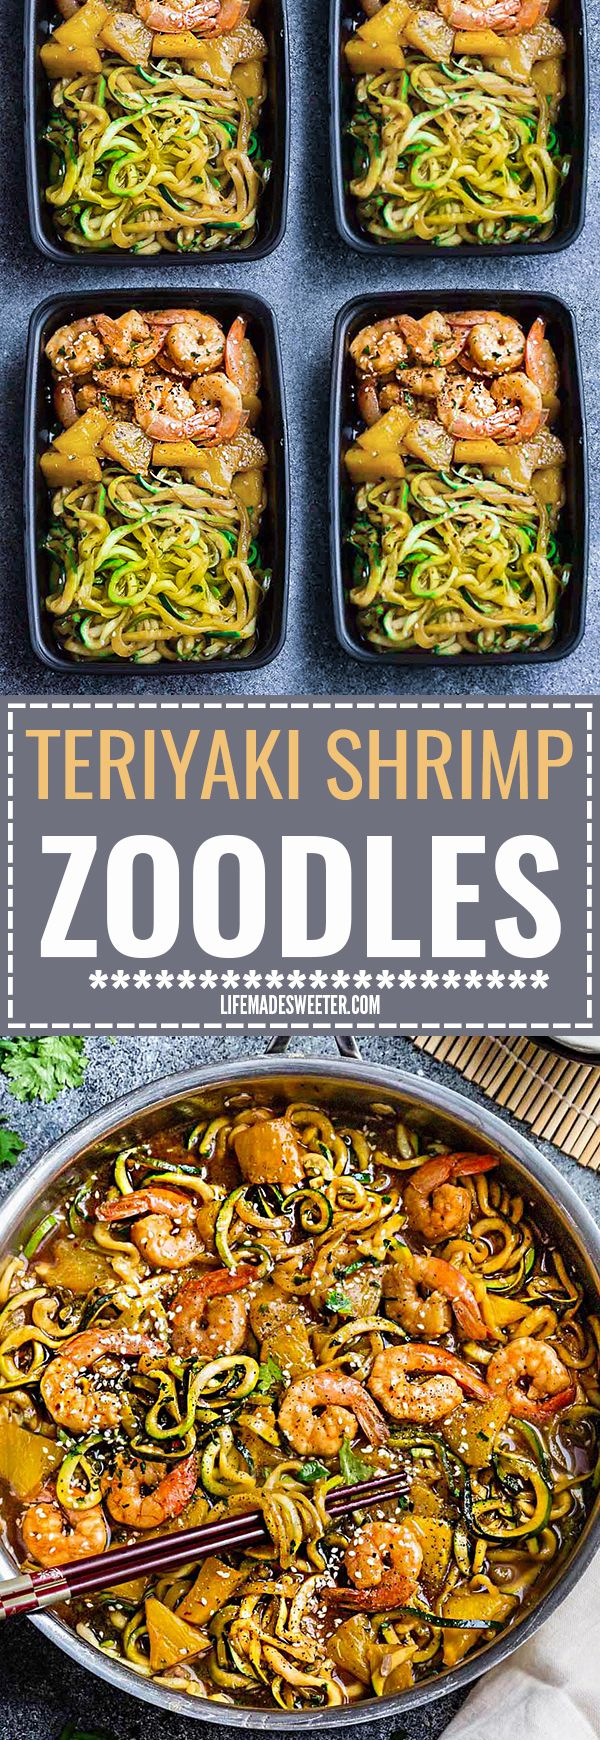 One Pan Teriyaki Shrimp Zoodles {Zucchini Noodles} is the perfect easy gluten free (or paleo) weeknight meal! Best of all, it takes only 30 minutes to make in just one pot and is so much healthier and better than takeout! Great for Sunday meal prep and leftovers make delicious lunch bowls for work or school lunchboxes! Plus Video!